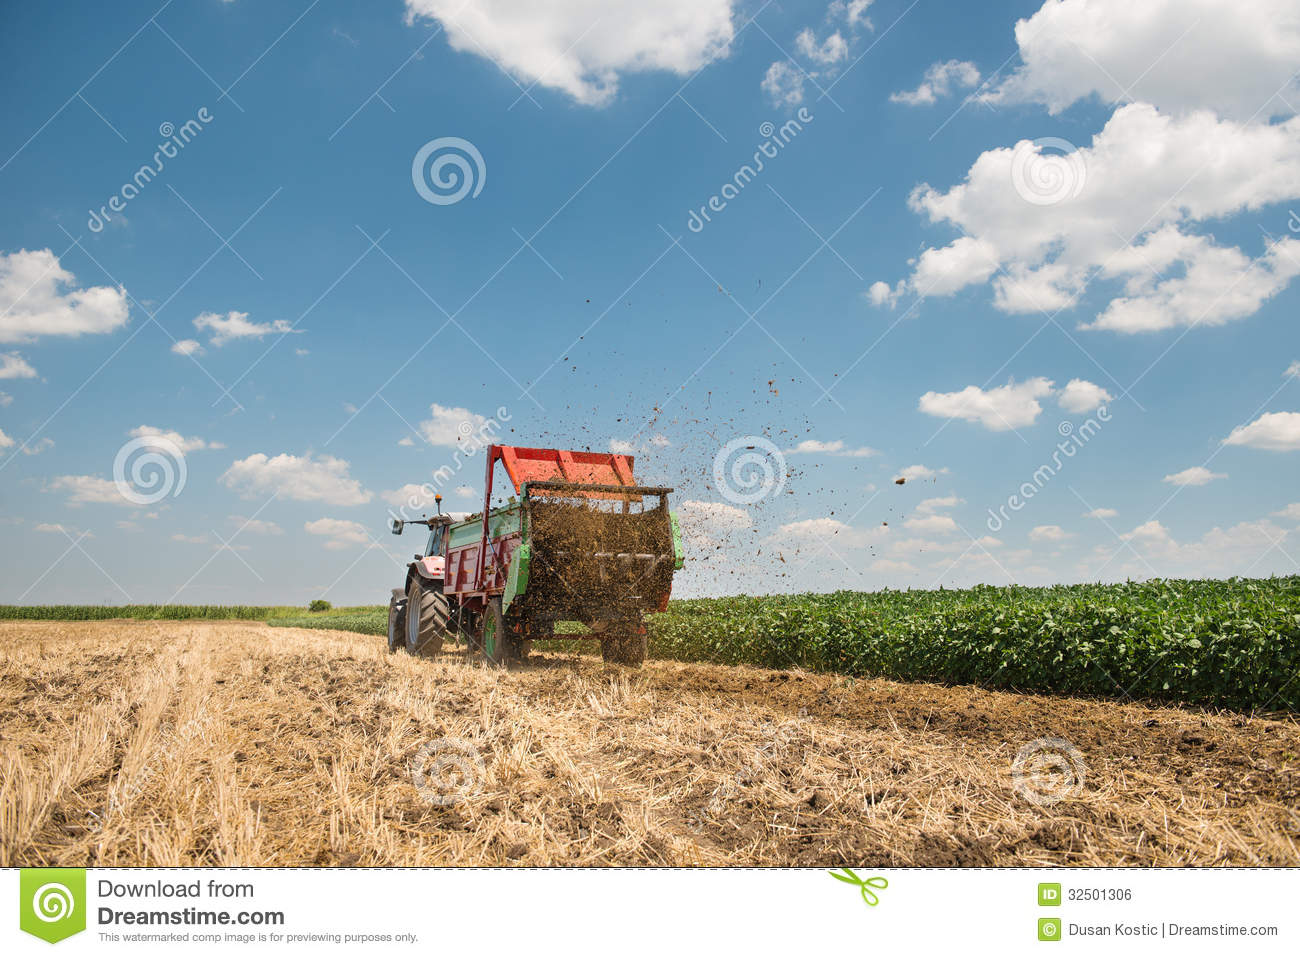 Working Manure Spreader : Manure spreader working royalty free stock image